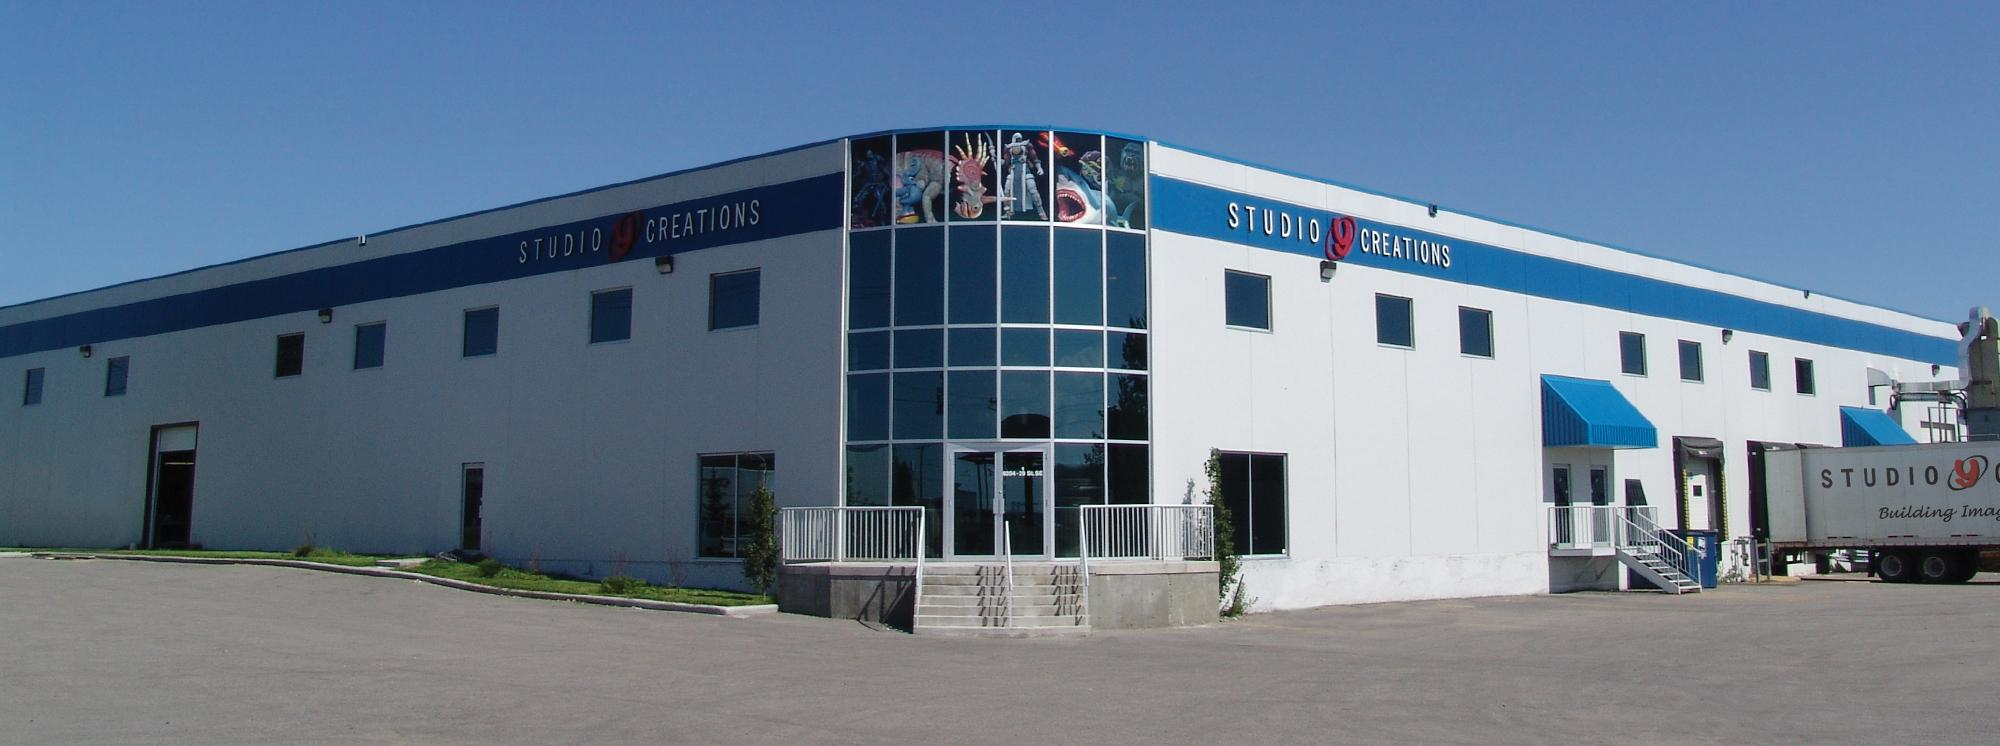 The Studio Y Creations Building